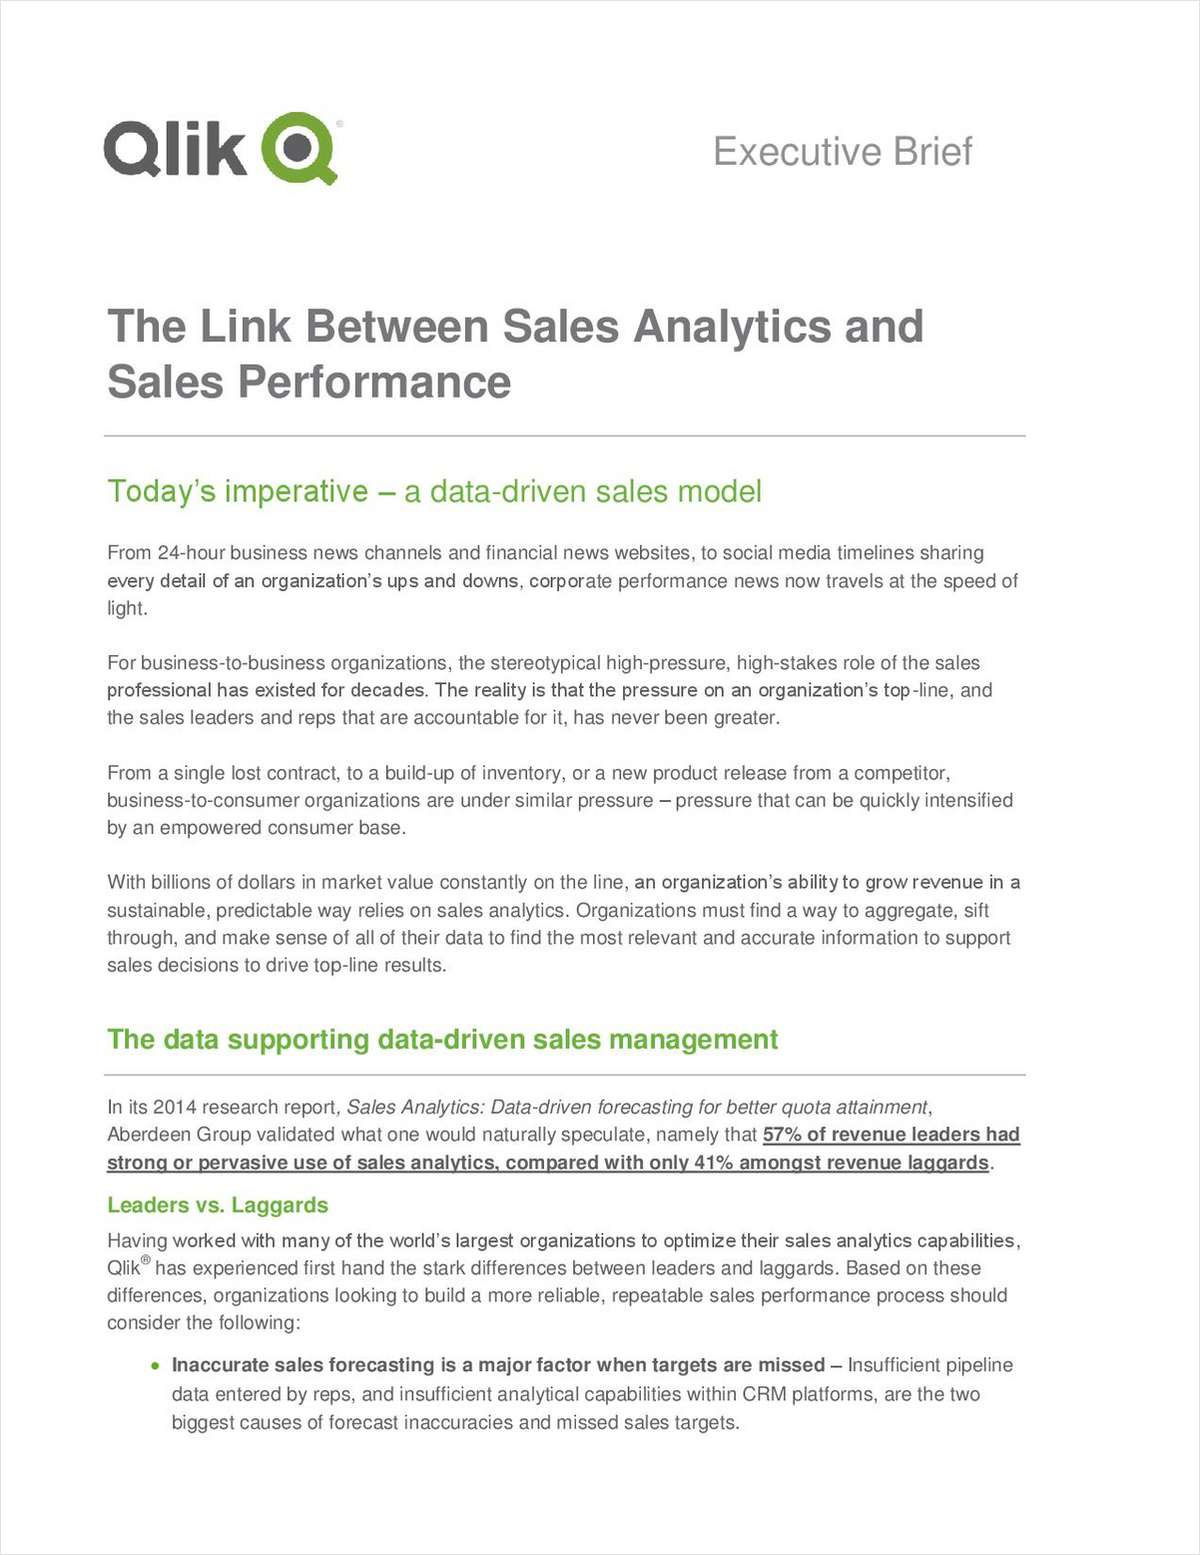 The Link between Sales Analytics and Sales Performance